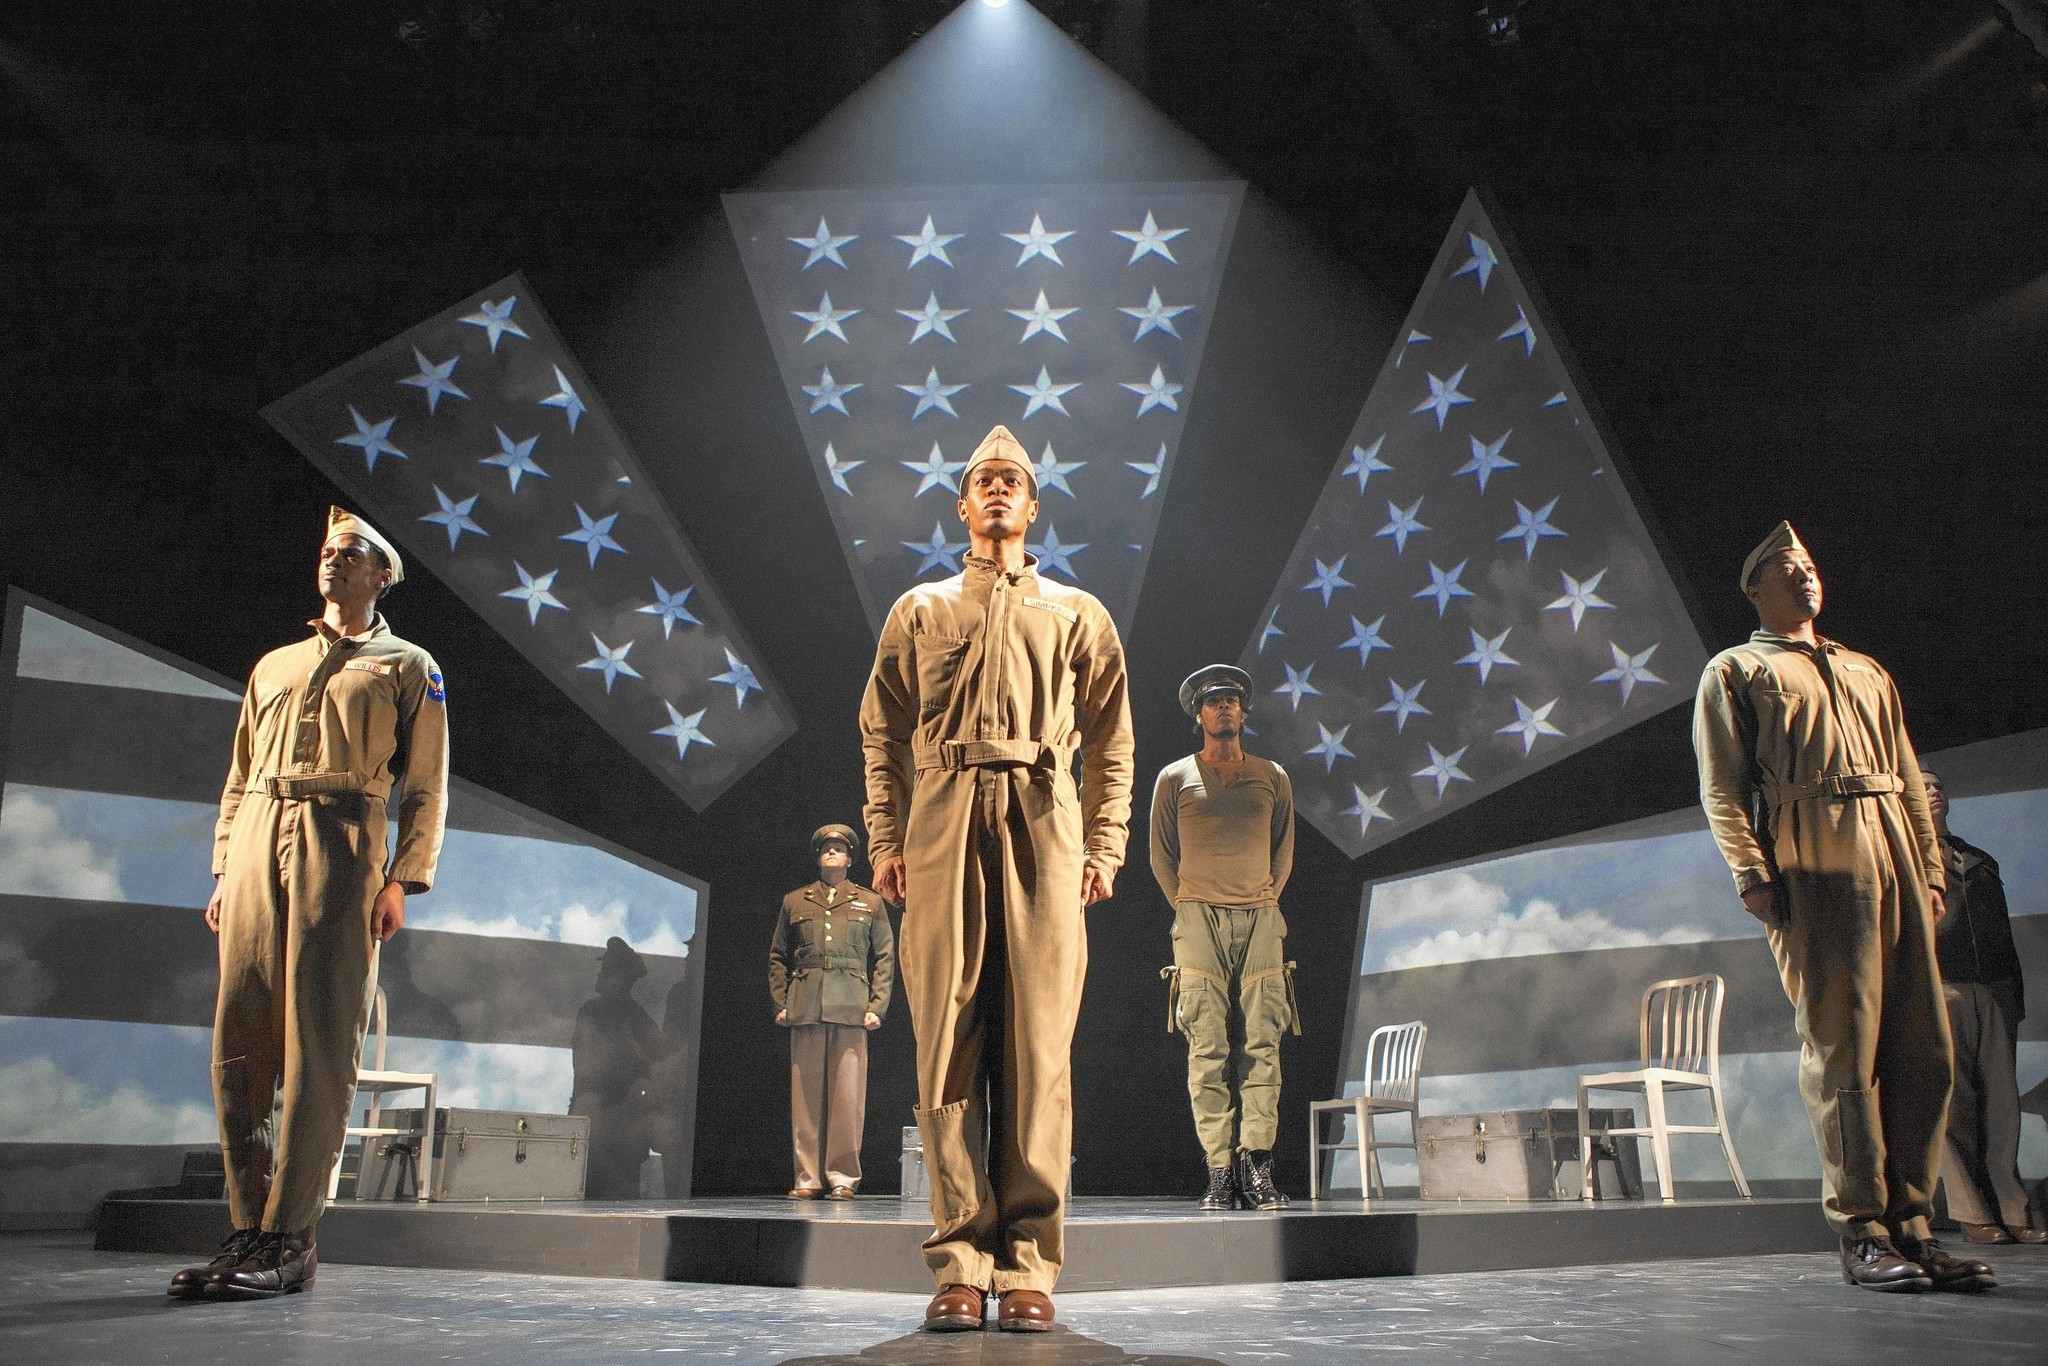 Fly smartly and briskly tells the story of the Tuskegee Airmen at Pasadena Playhouse